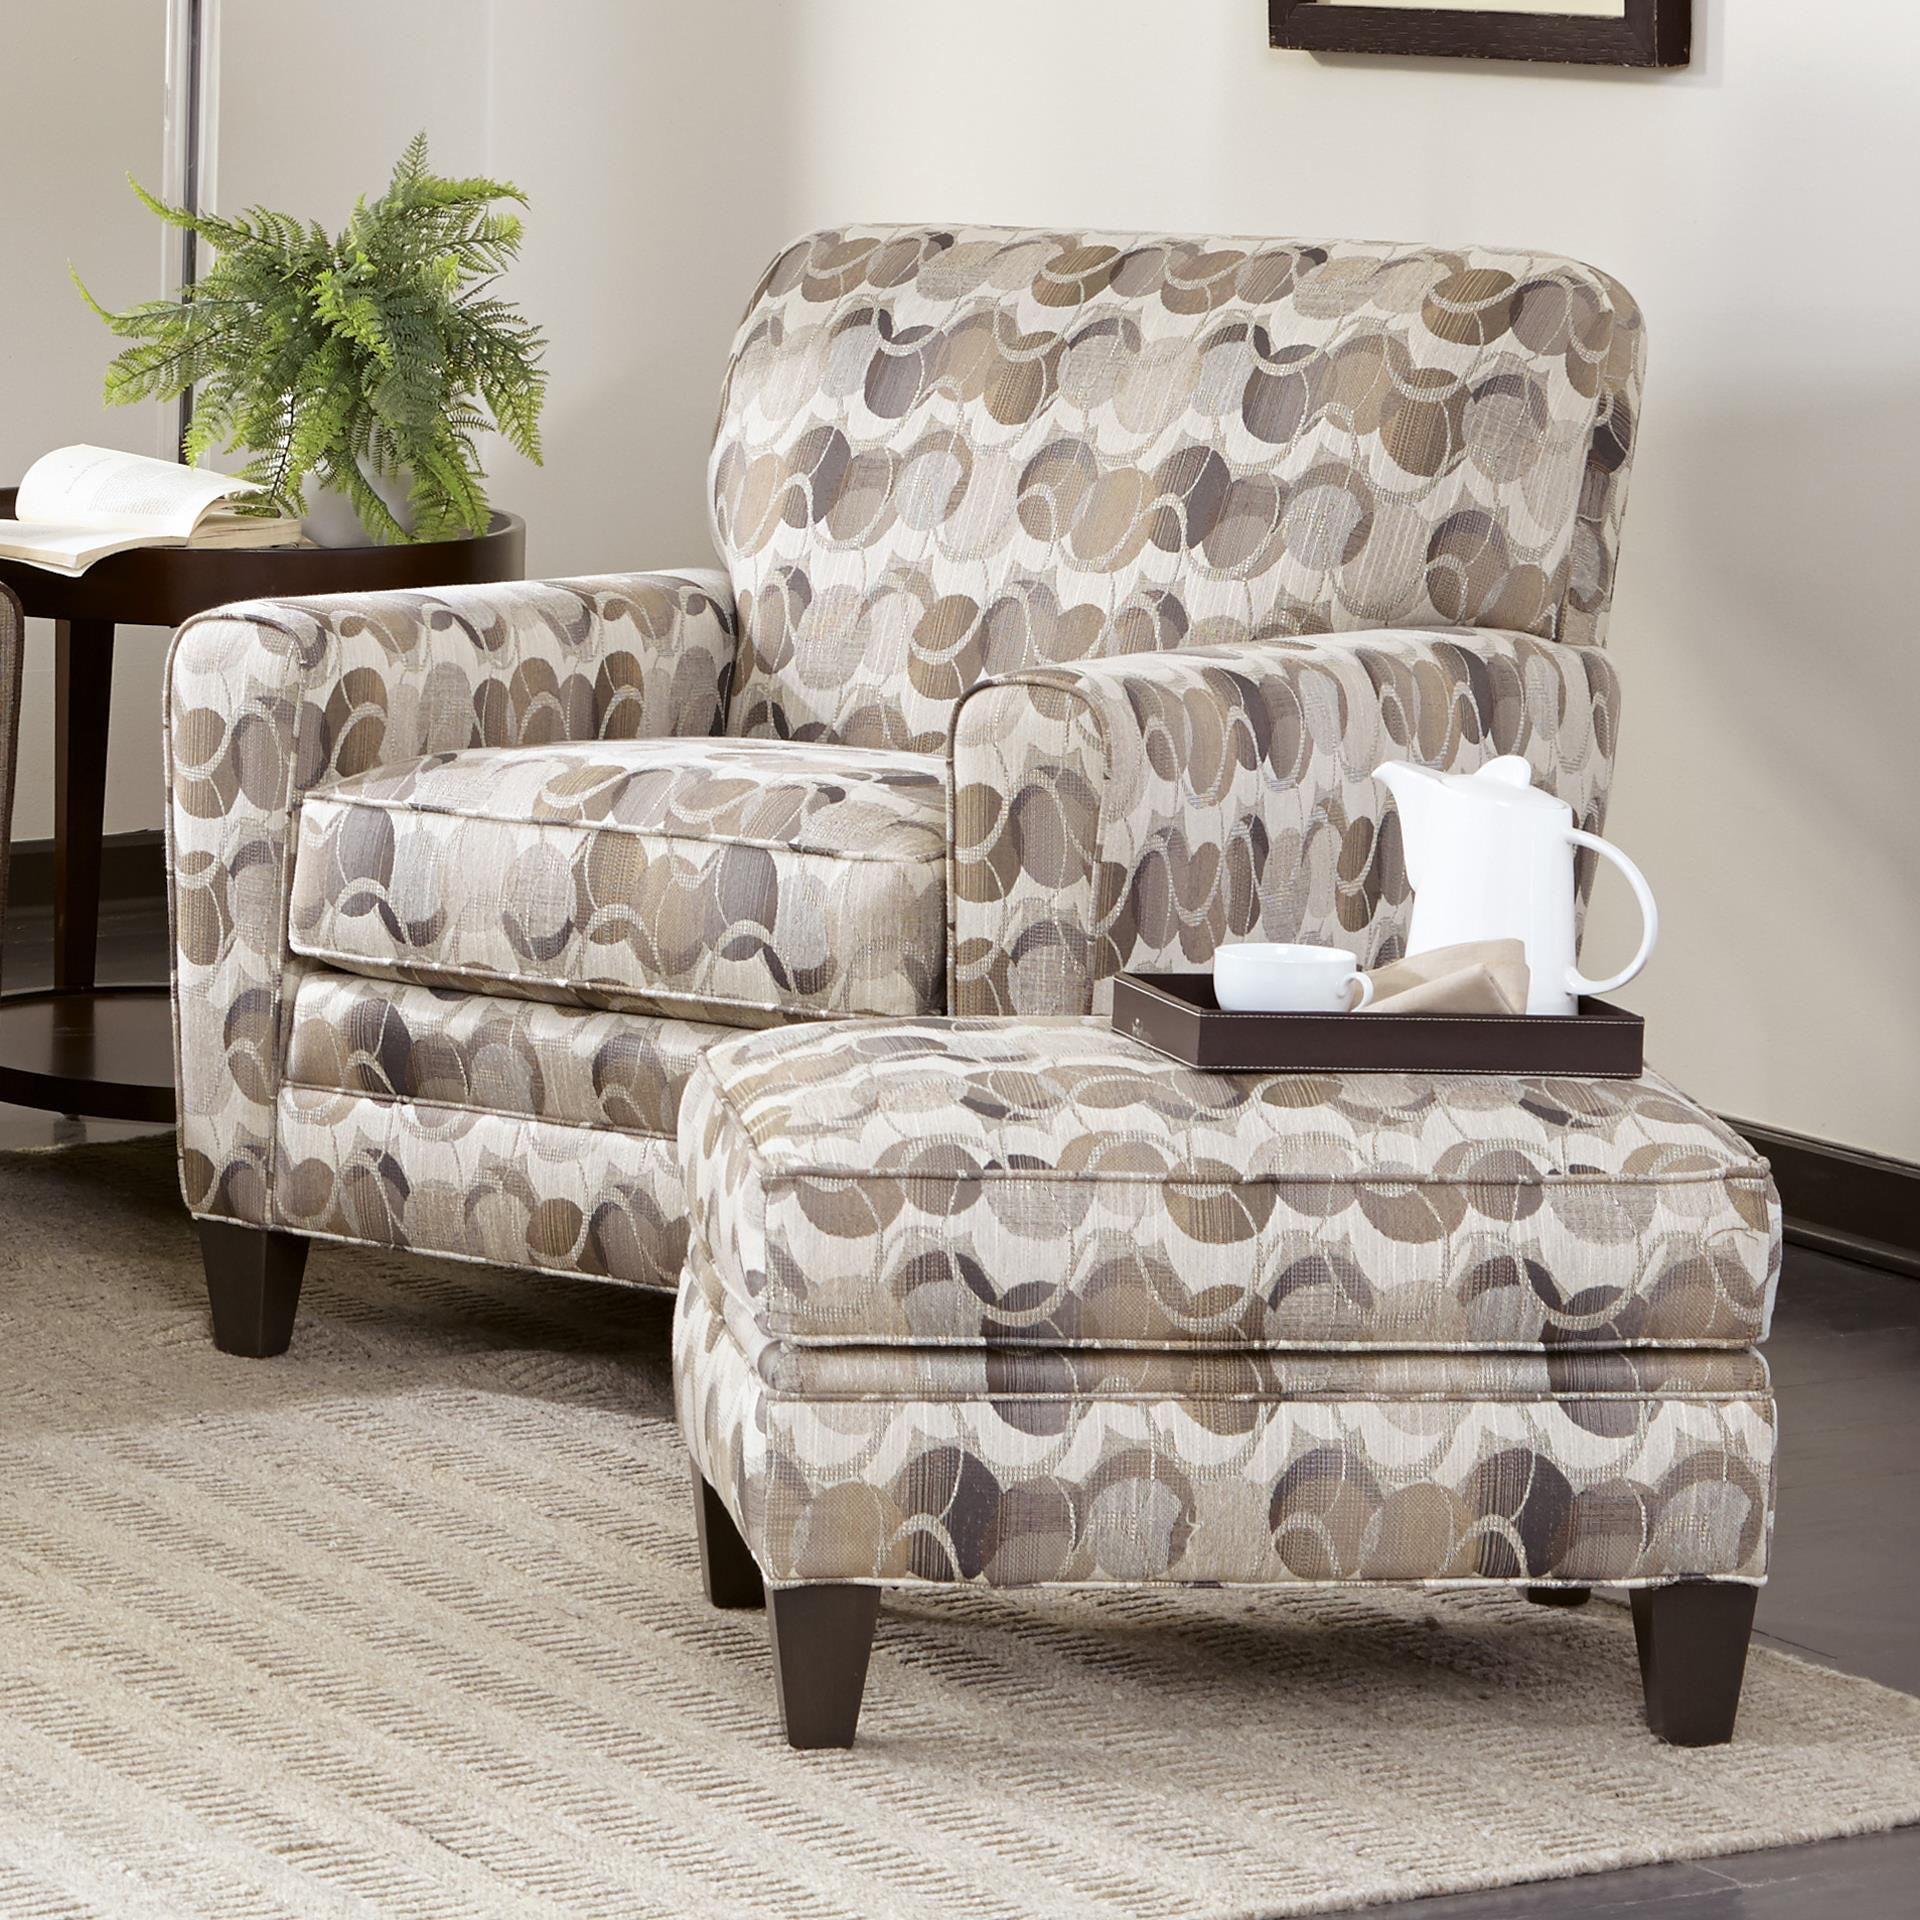 225 Chair & Ottoman Set by Smith Brothers at Turk Furniture